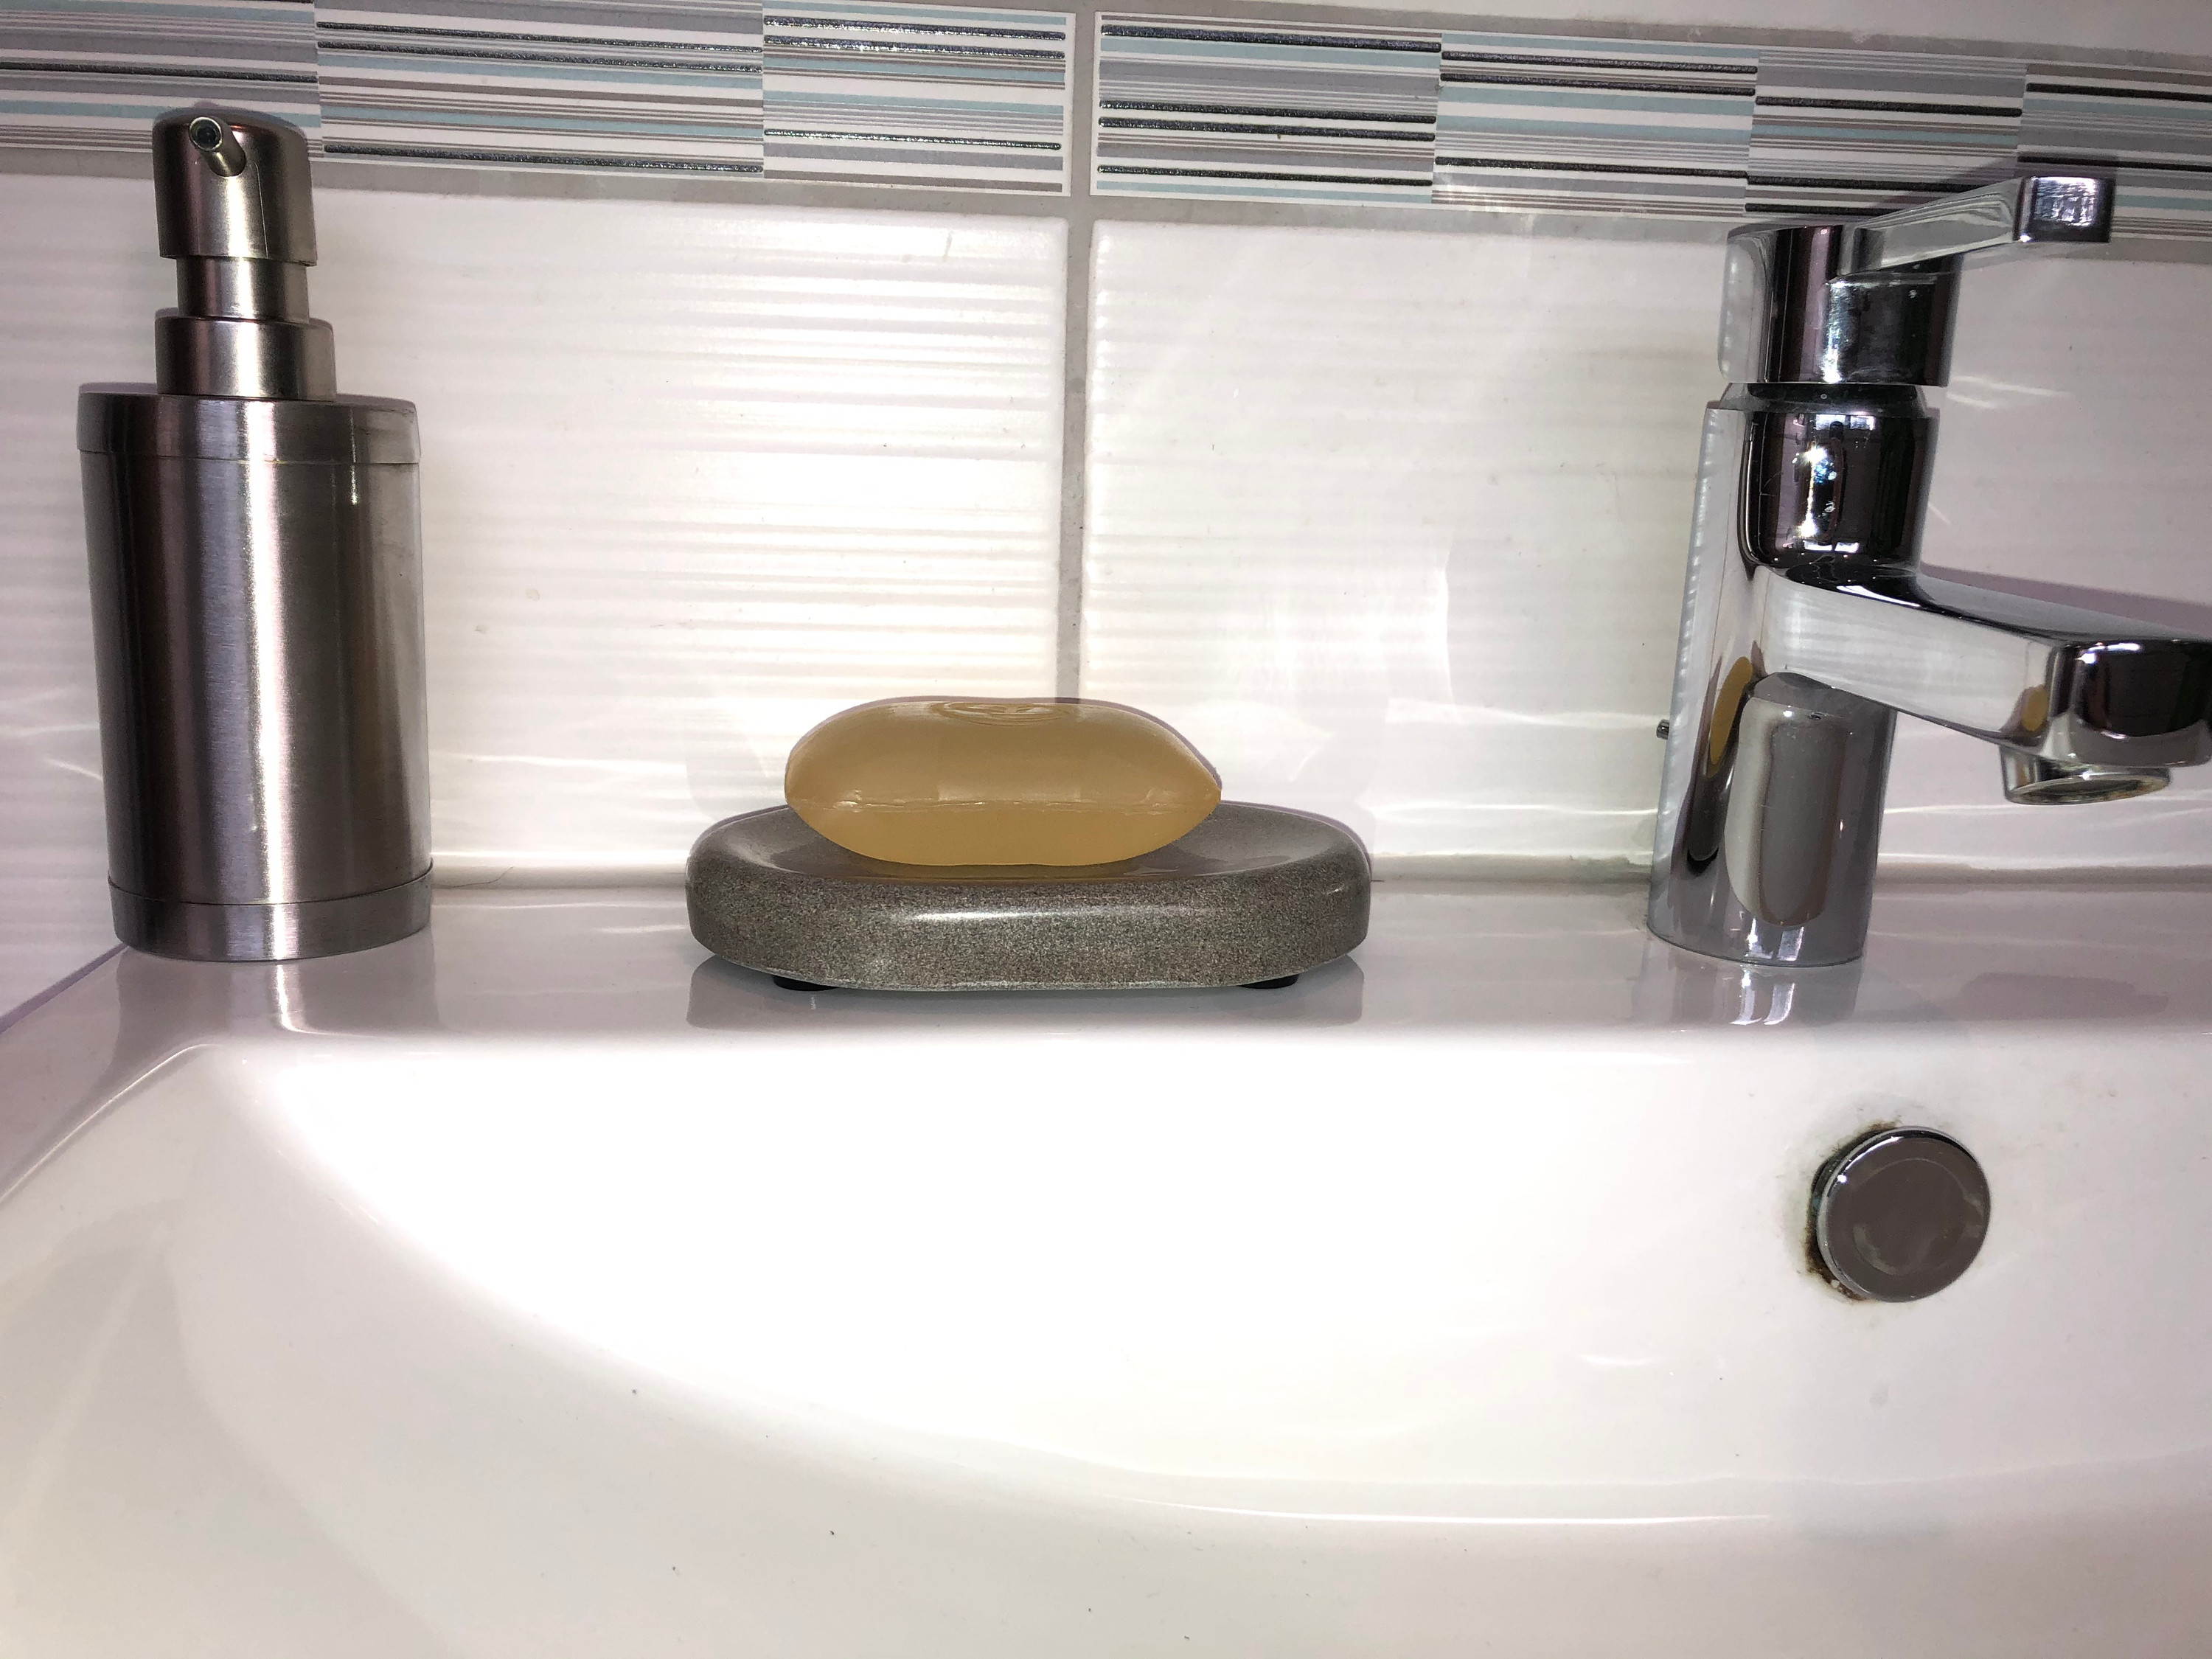 Soap Dish Made Of Ruhr Sandstone, German Made Bathroom Accessories